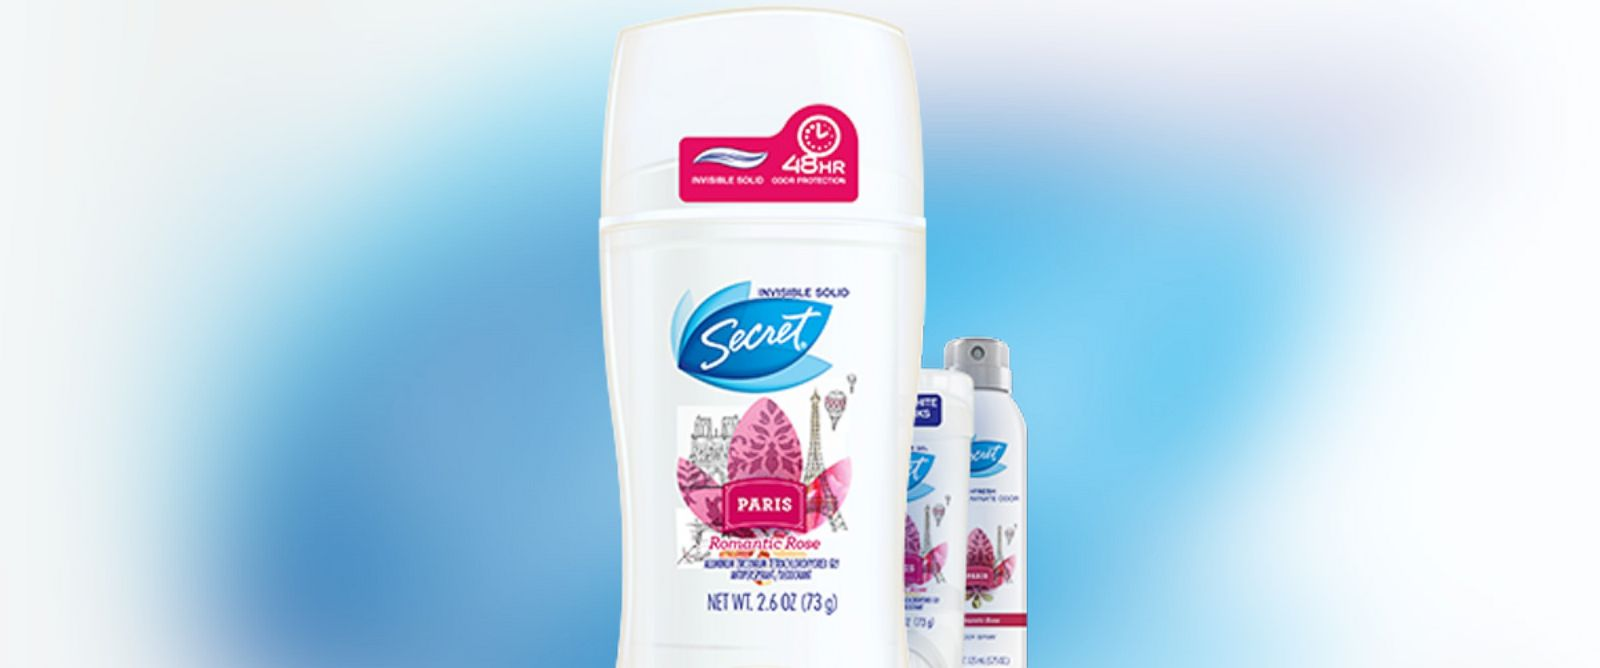 PHOTO: Pictured is Secrets Paris Romantic Rose deodorant.